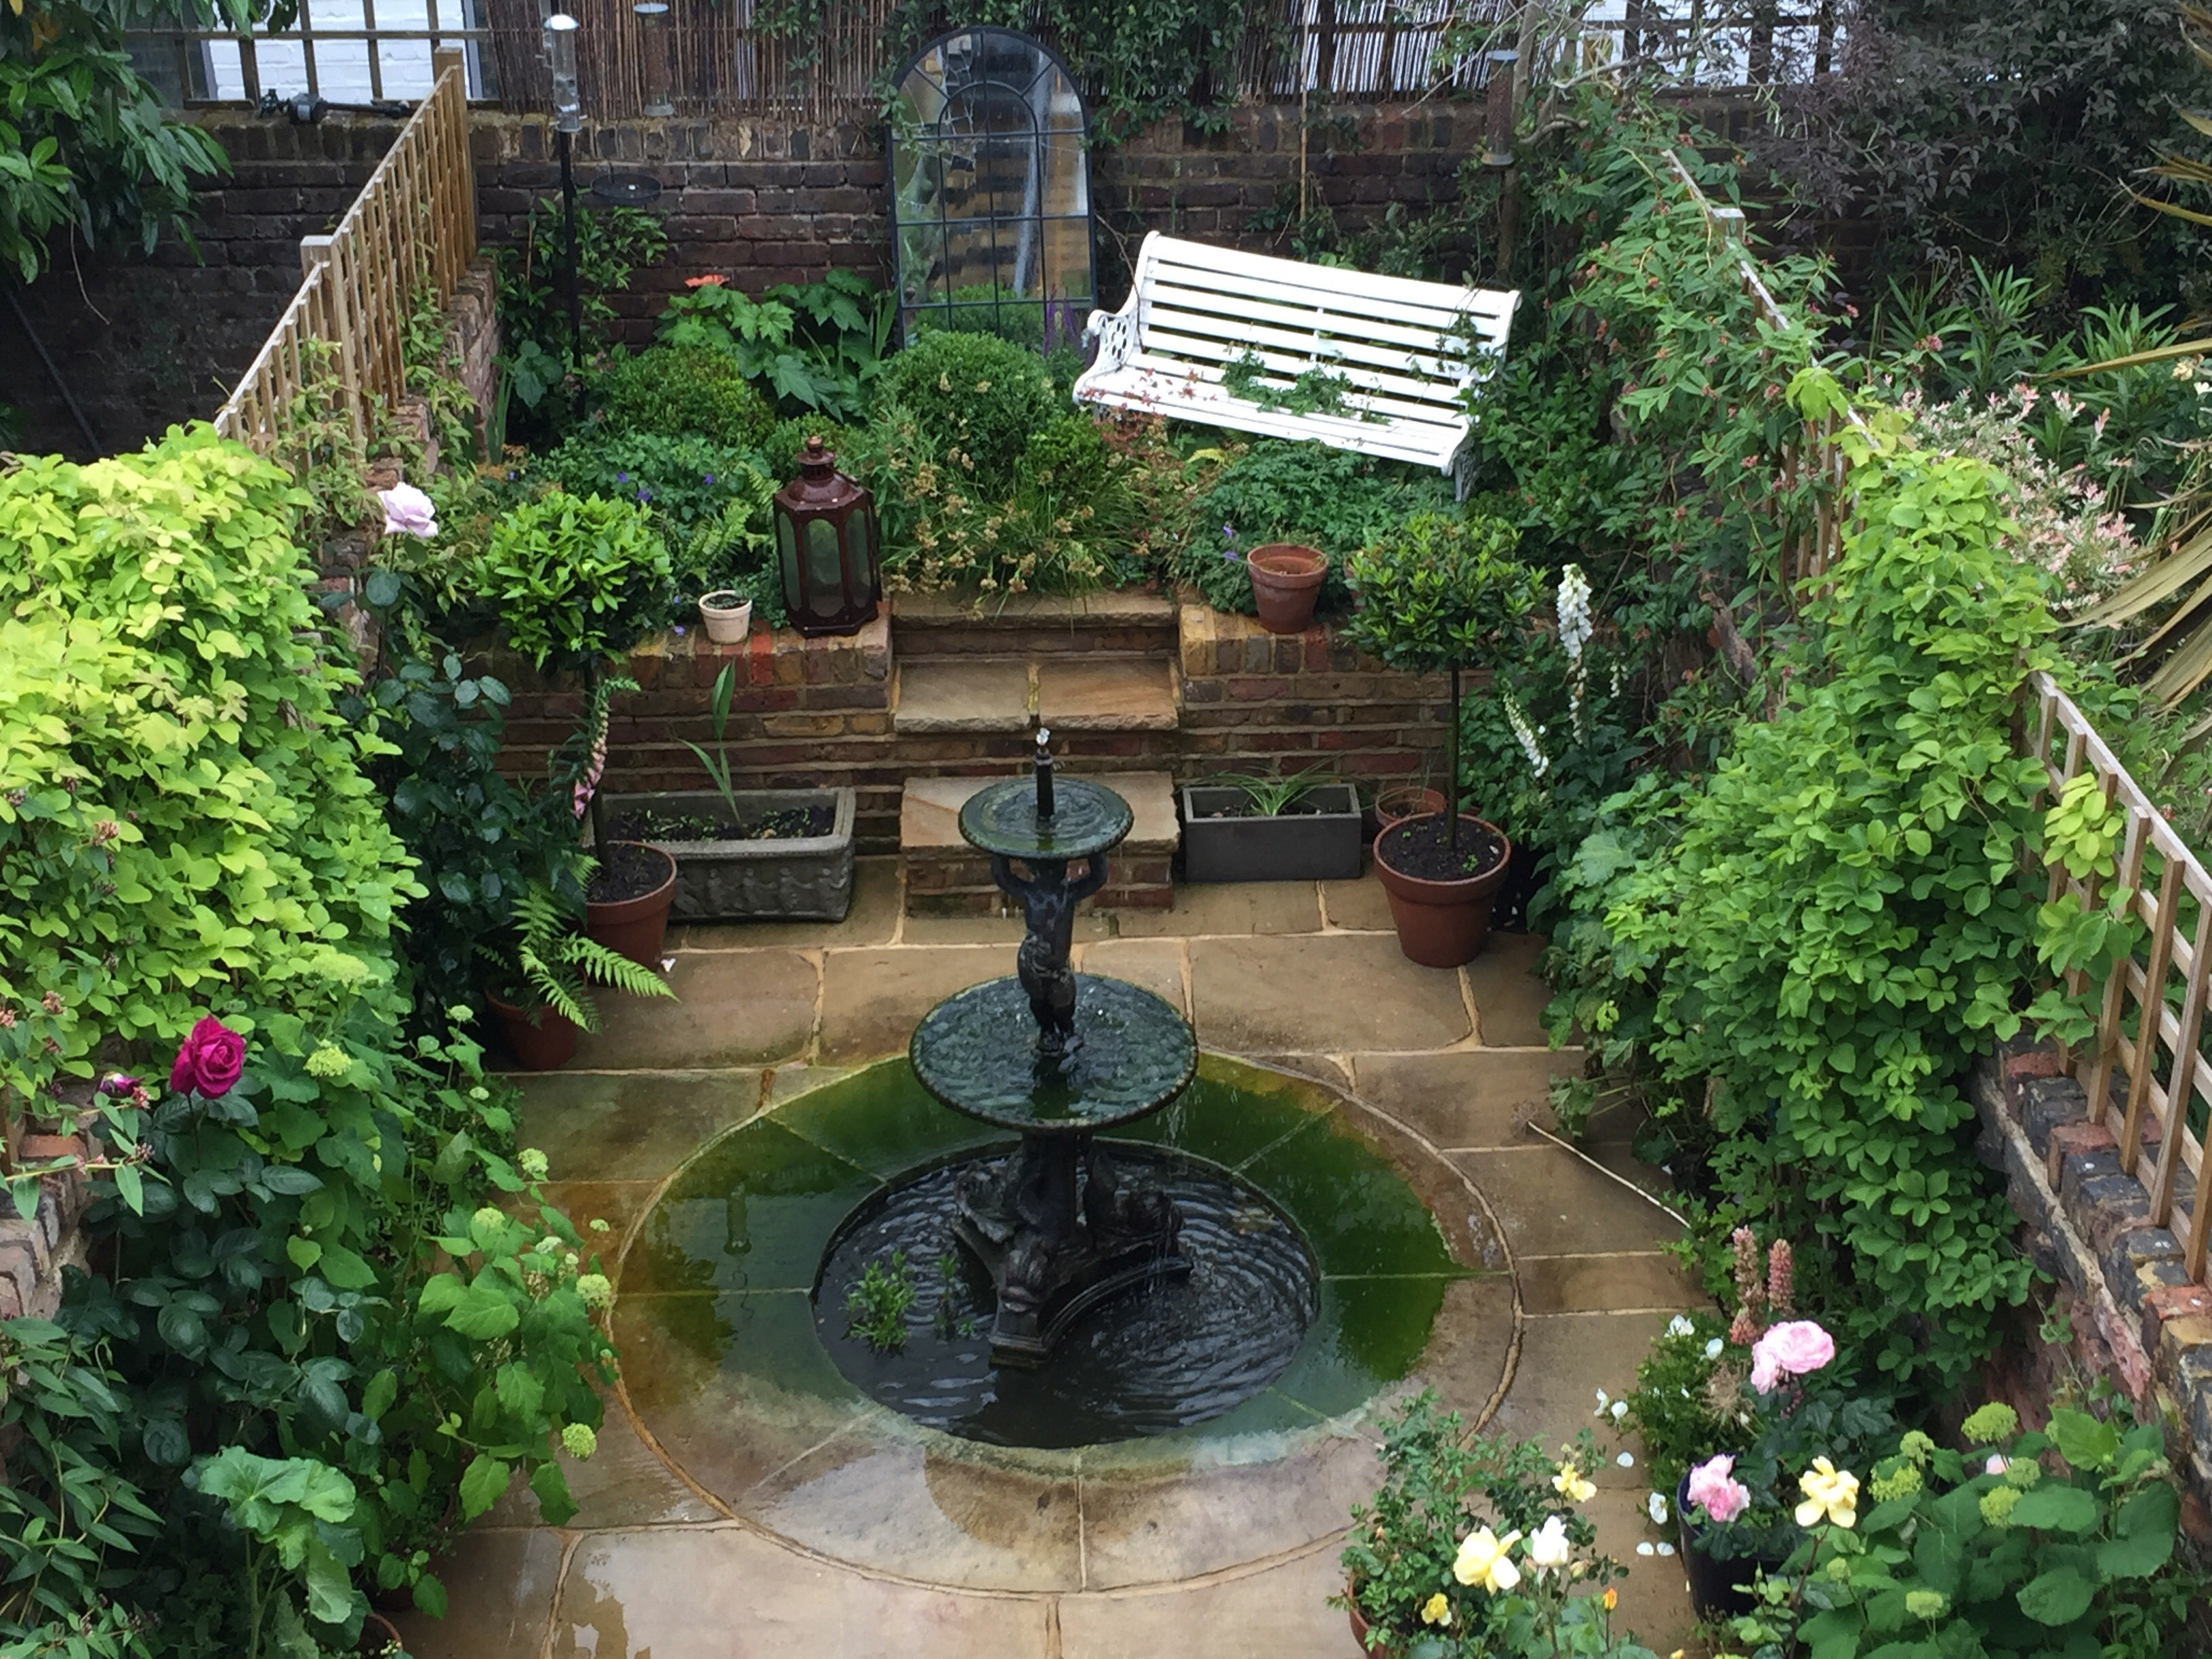 Buy antique cast iron water fountains and features at UKAA. Genuine old water fountains fitted in traditional gardens add character to your home